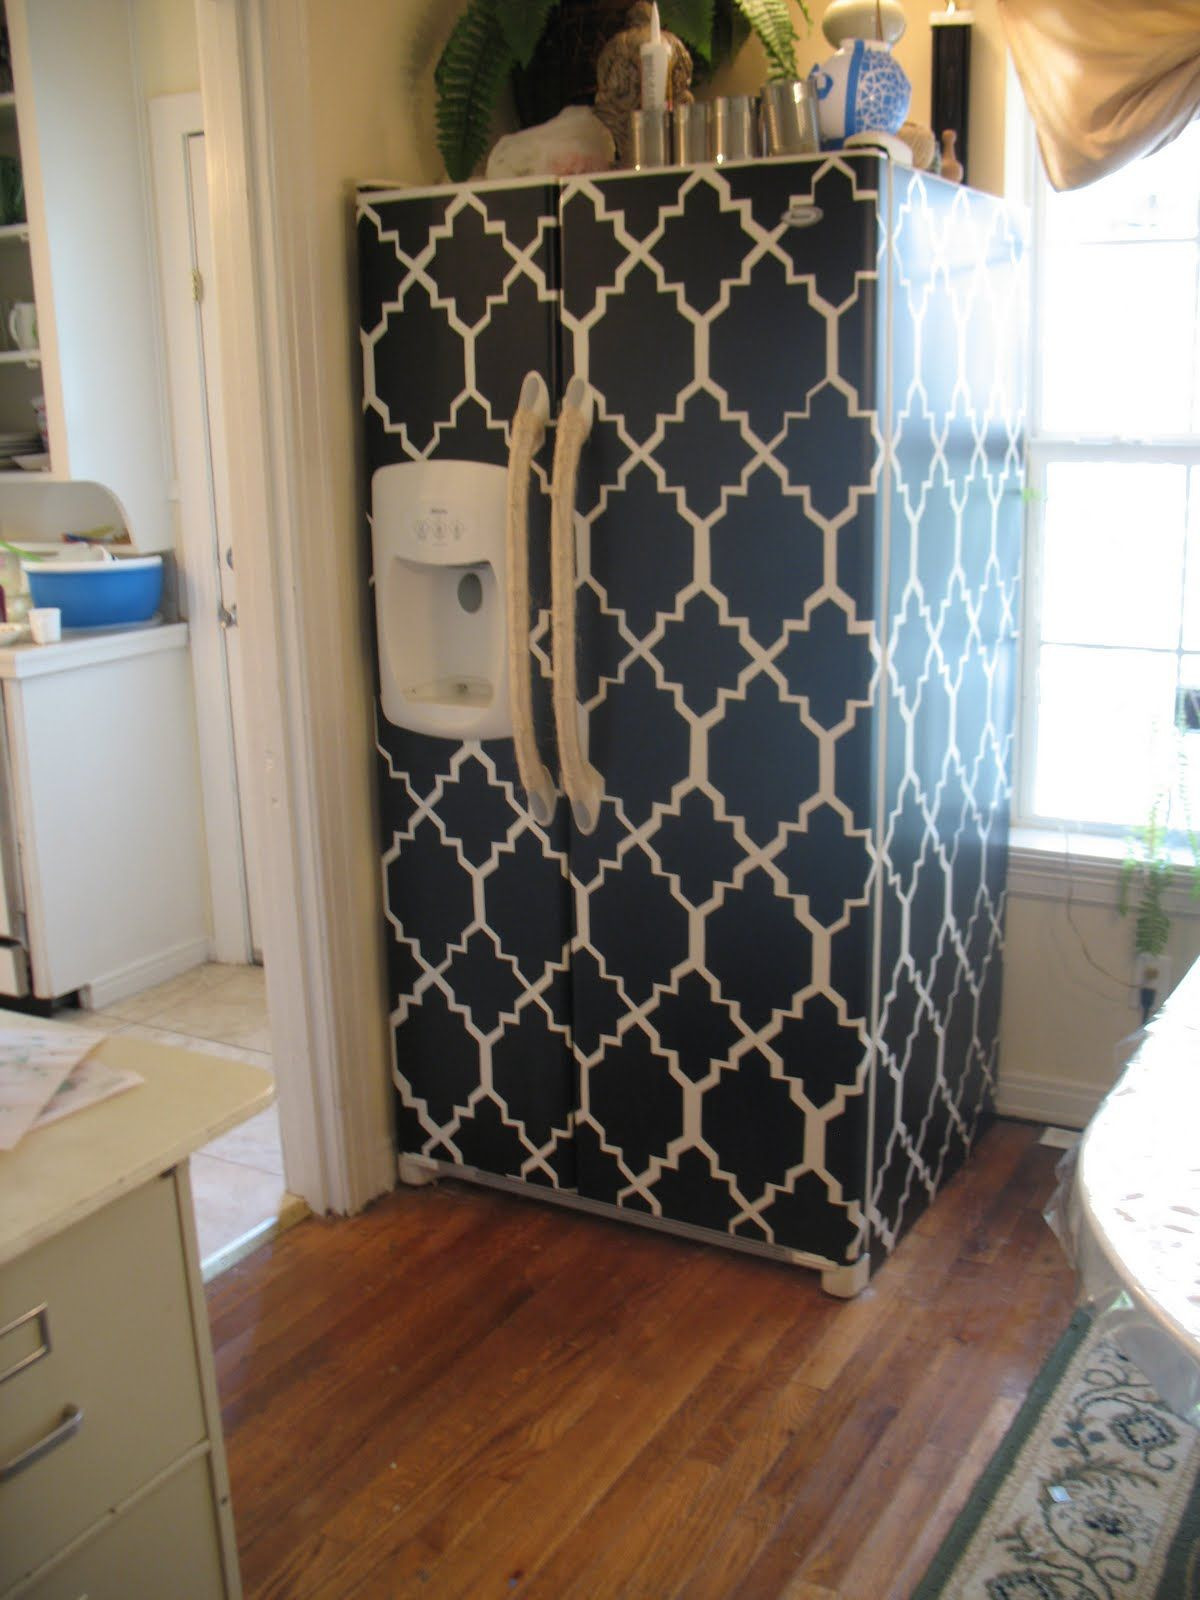 hardwood floor contact paper of ugly old fridge cover it a cheap way to remodel using contact with regard to a cheap way to remodel using contact paper totally would do that with wood style paper